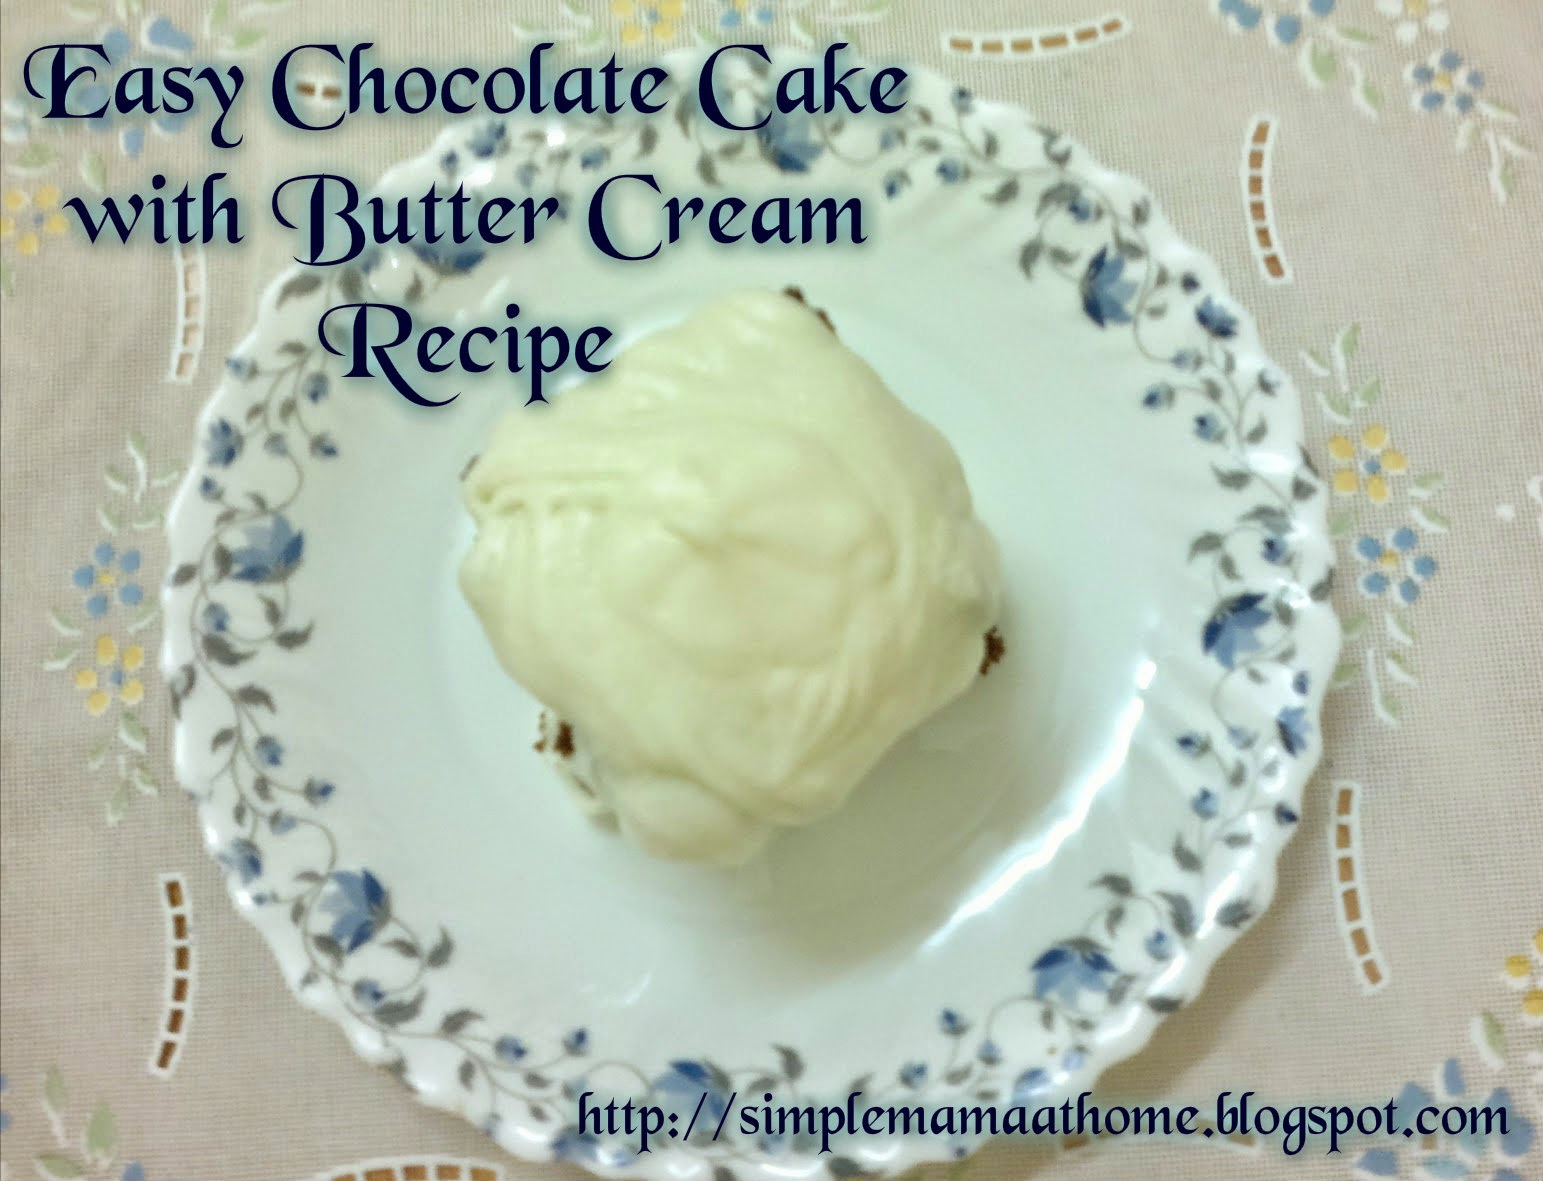 Easy Chocolate Cake with Butter Cream Recipe